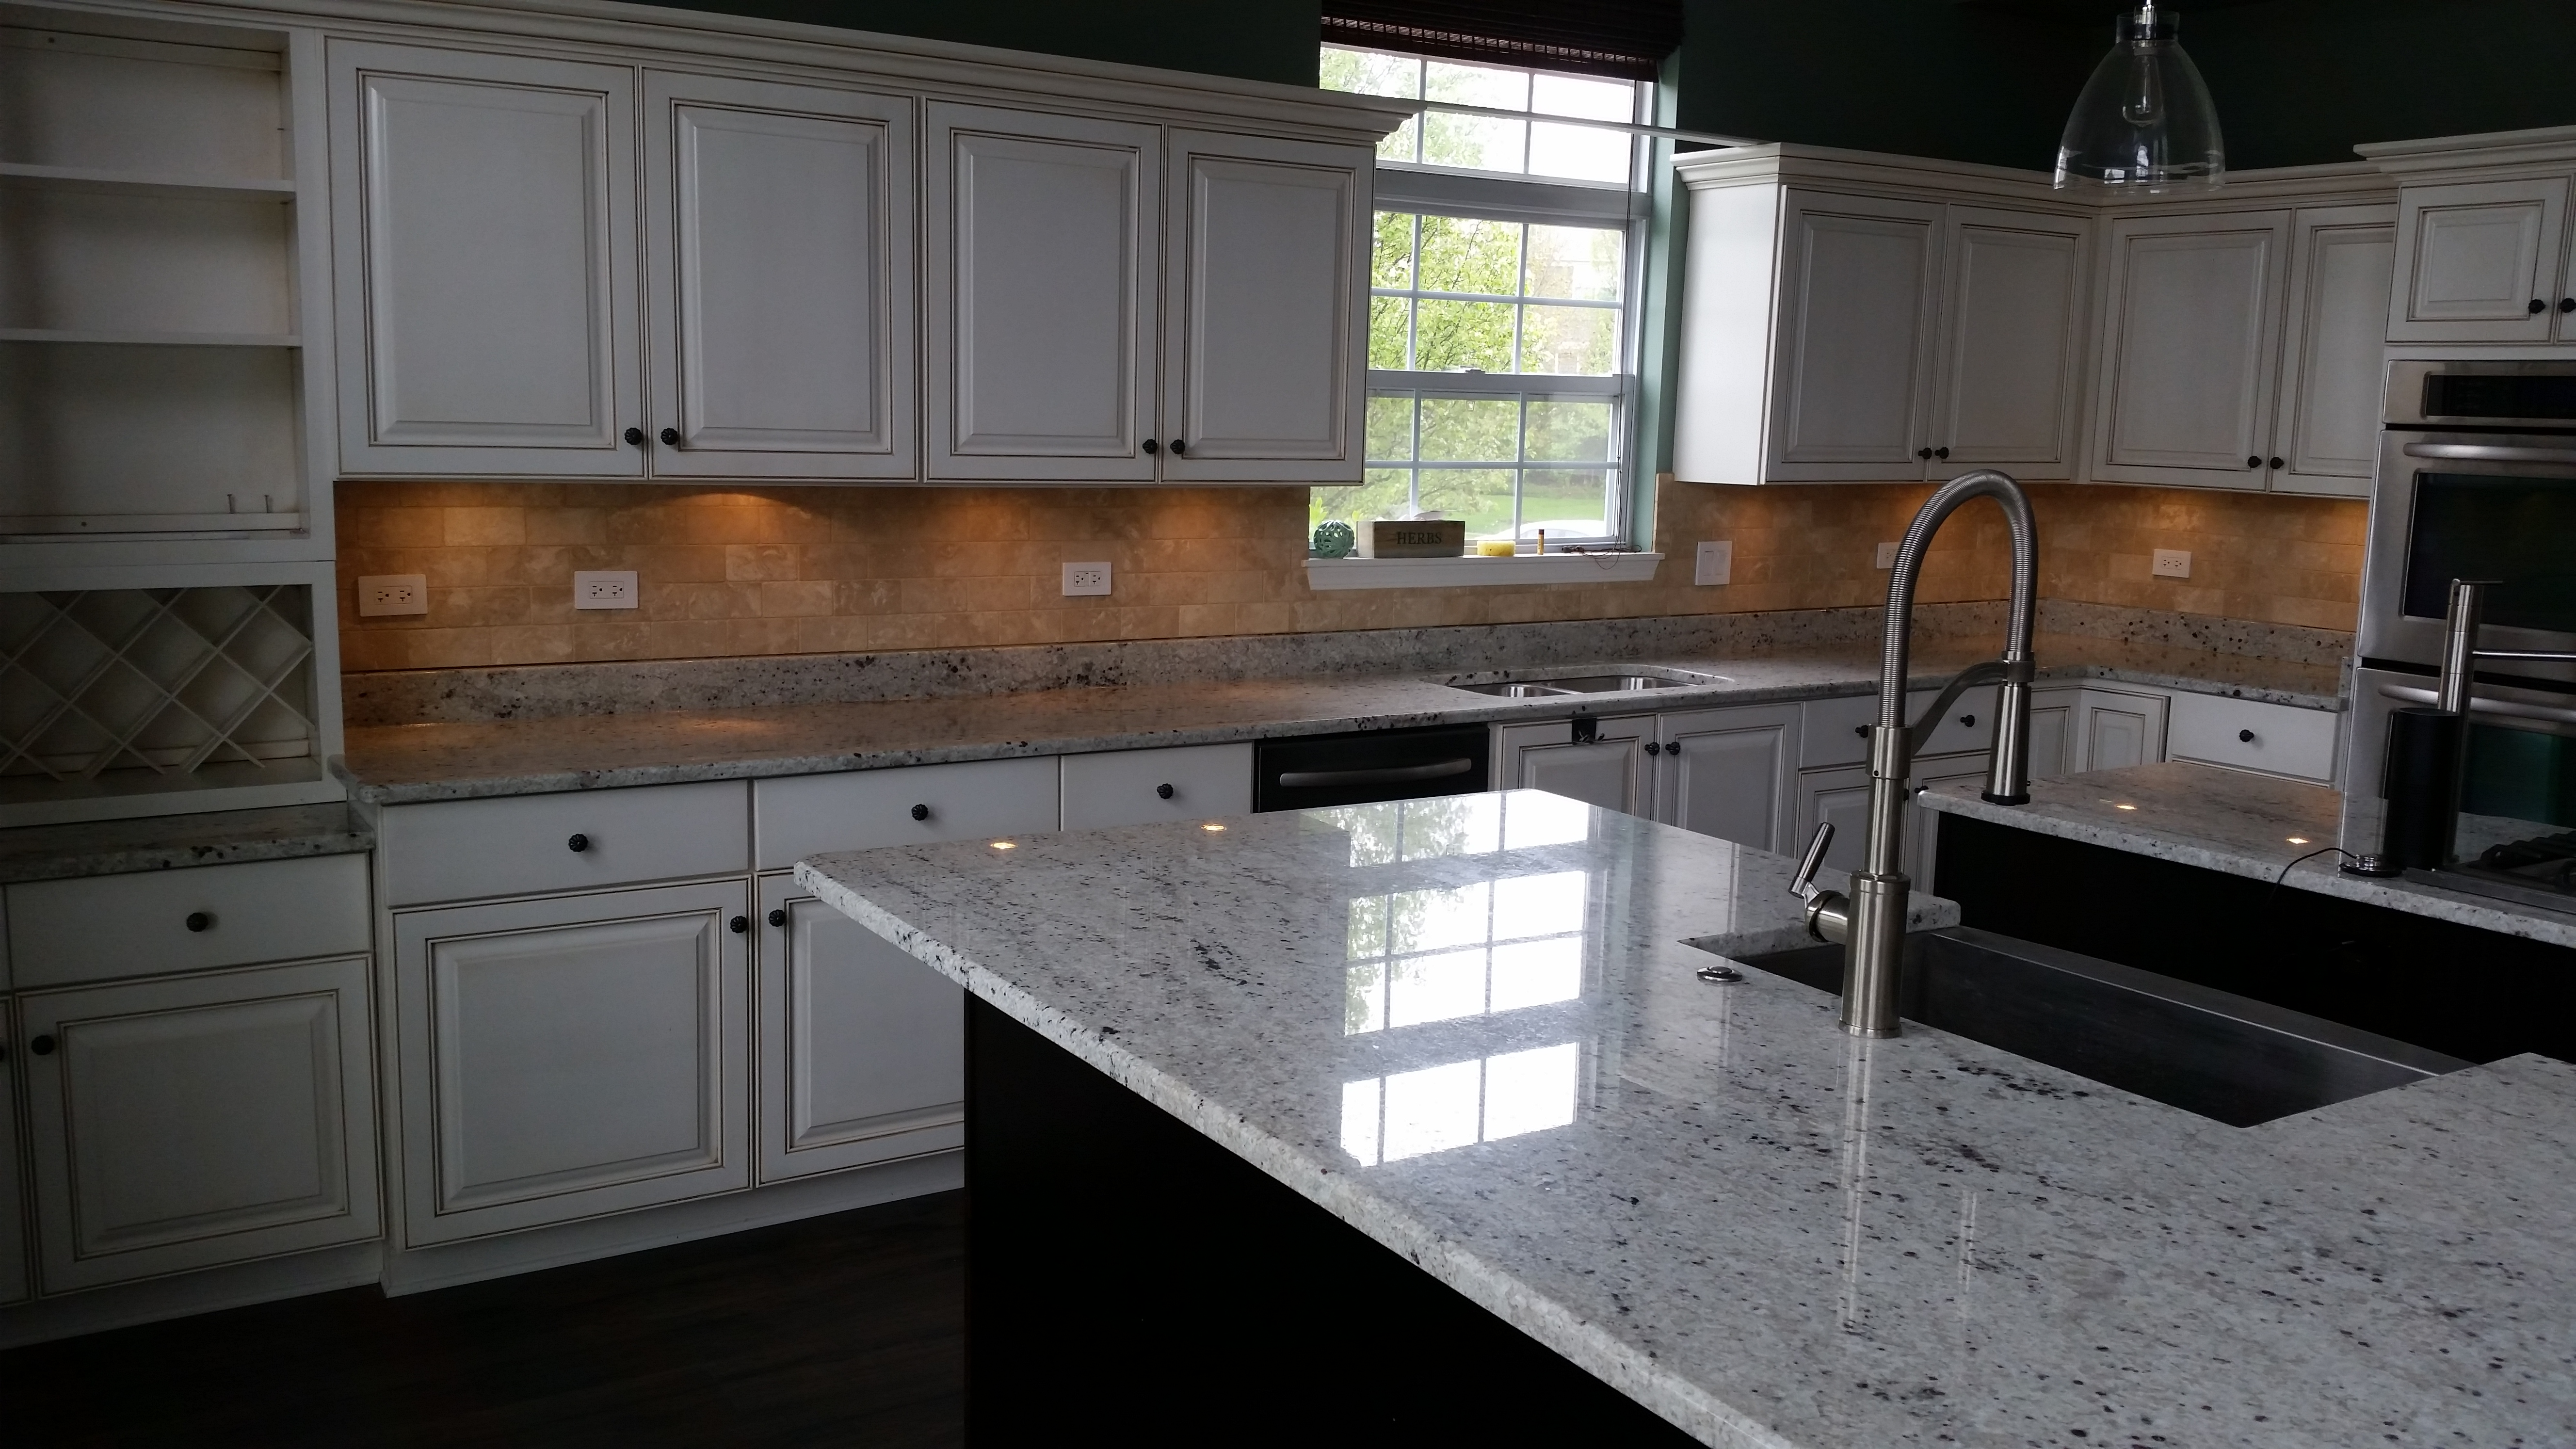 pitting countertop do natural i and articles are it countertops fissures about green kitchen should what butterfly stone granite